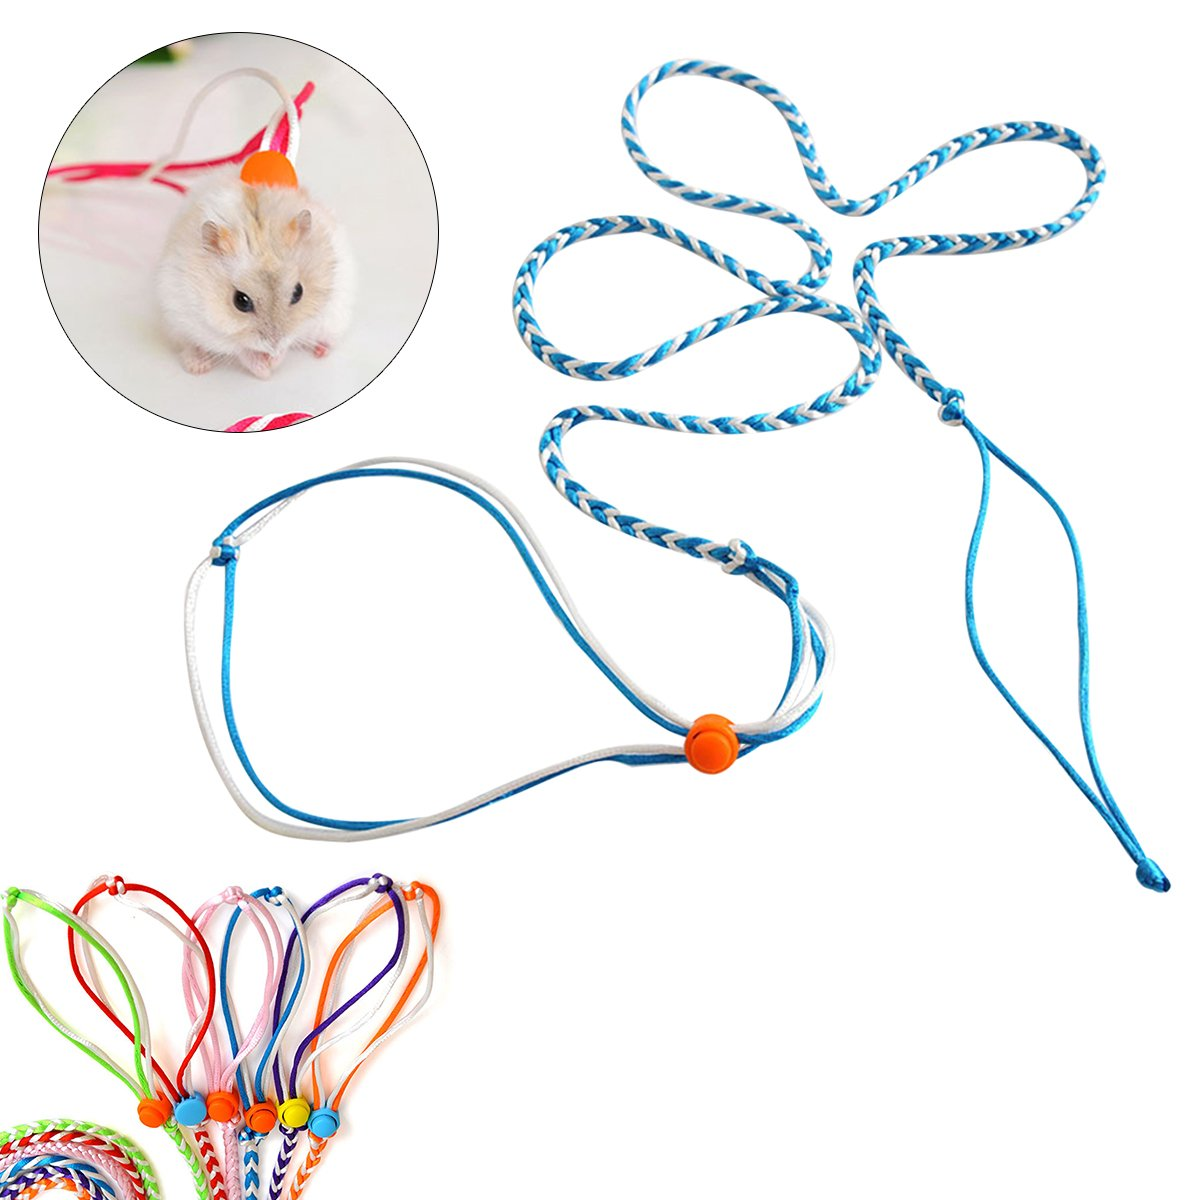 UEETEK Harnais réglable Hamster Leash and Collar Walking Lead pour Hamster Cricetulu Mouse Mouse Squirrel Petits Animaux Flexible Handle Rope 2M (Aléatoire Couleur)